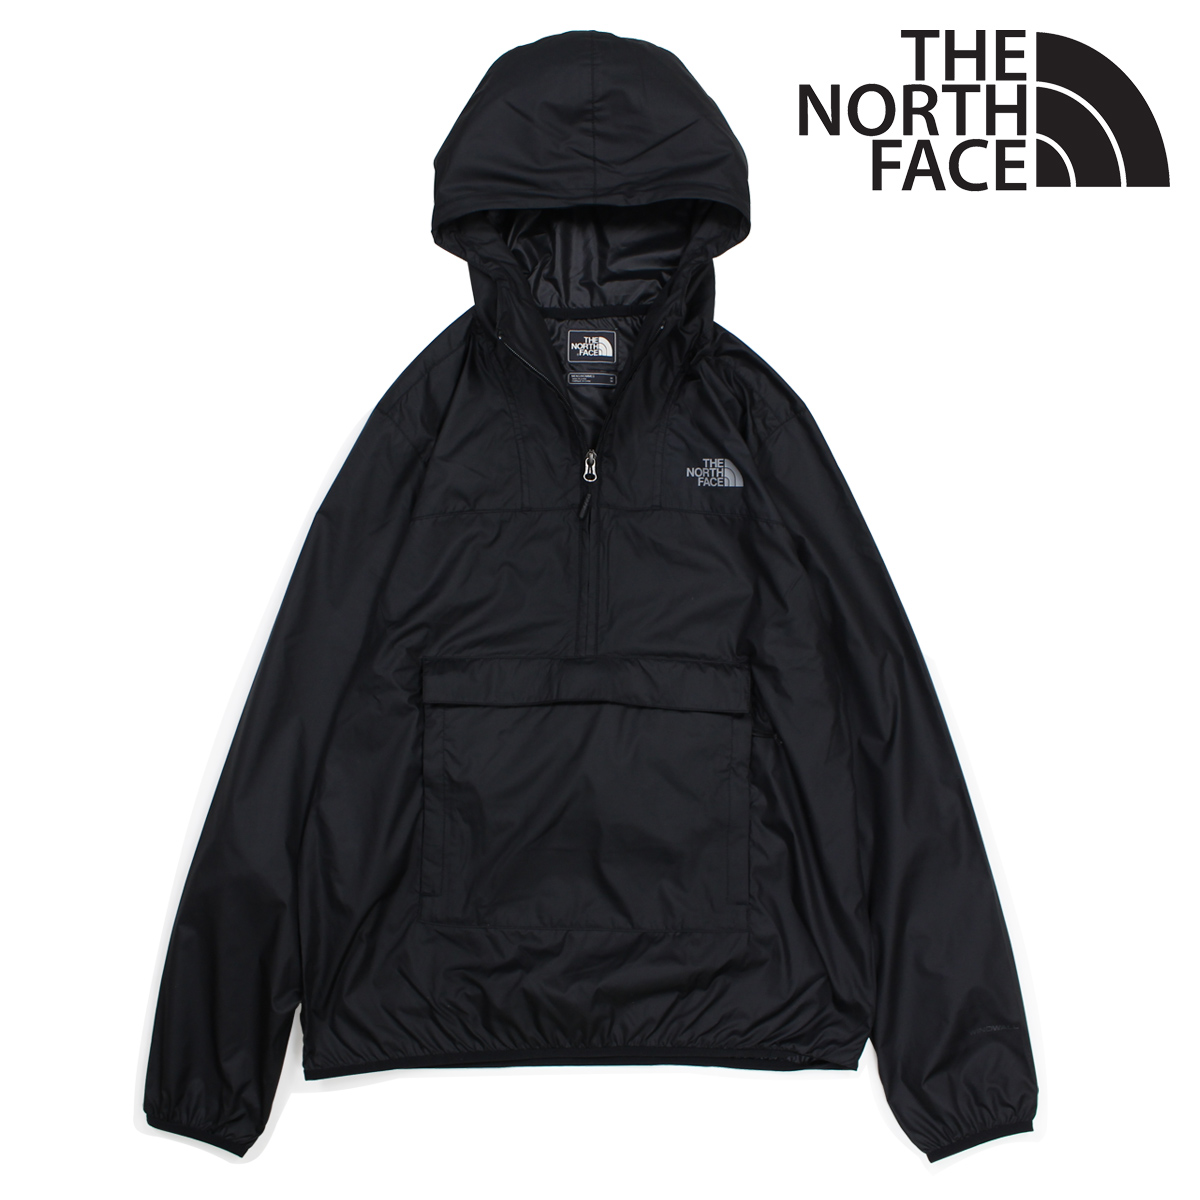 ALLSPORTS  THE NORTH FACE MENS FANORAK North Face jacket mountain ... bc1b34b1f